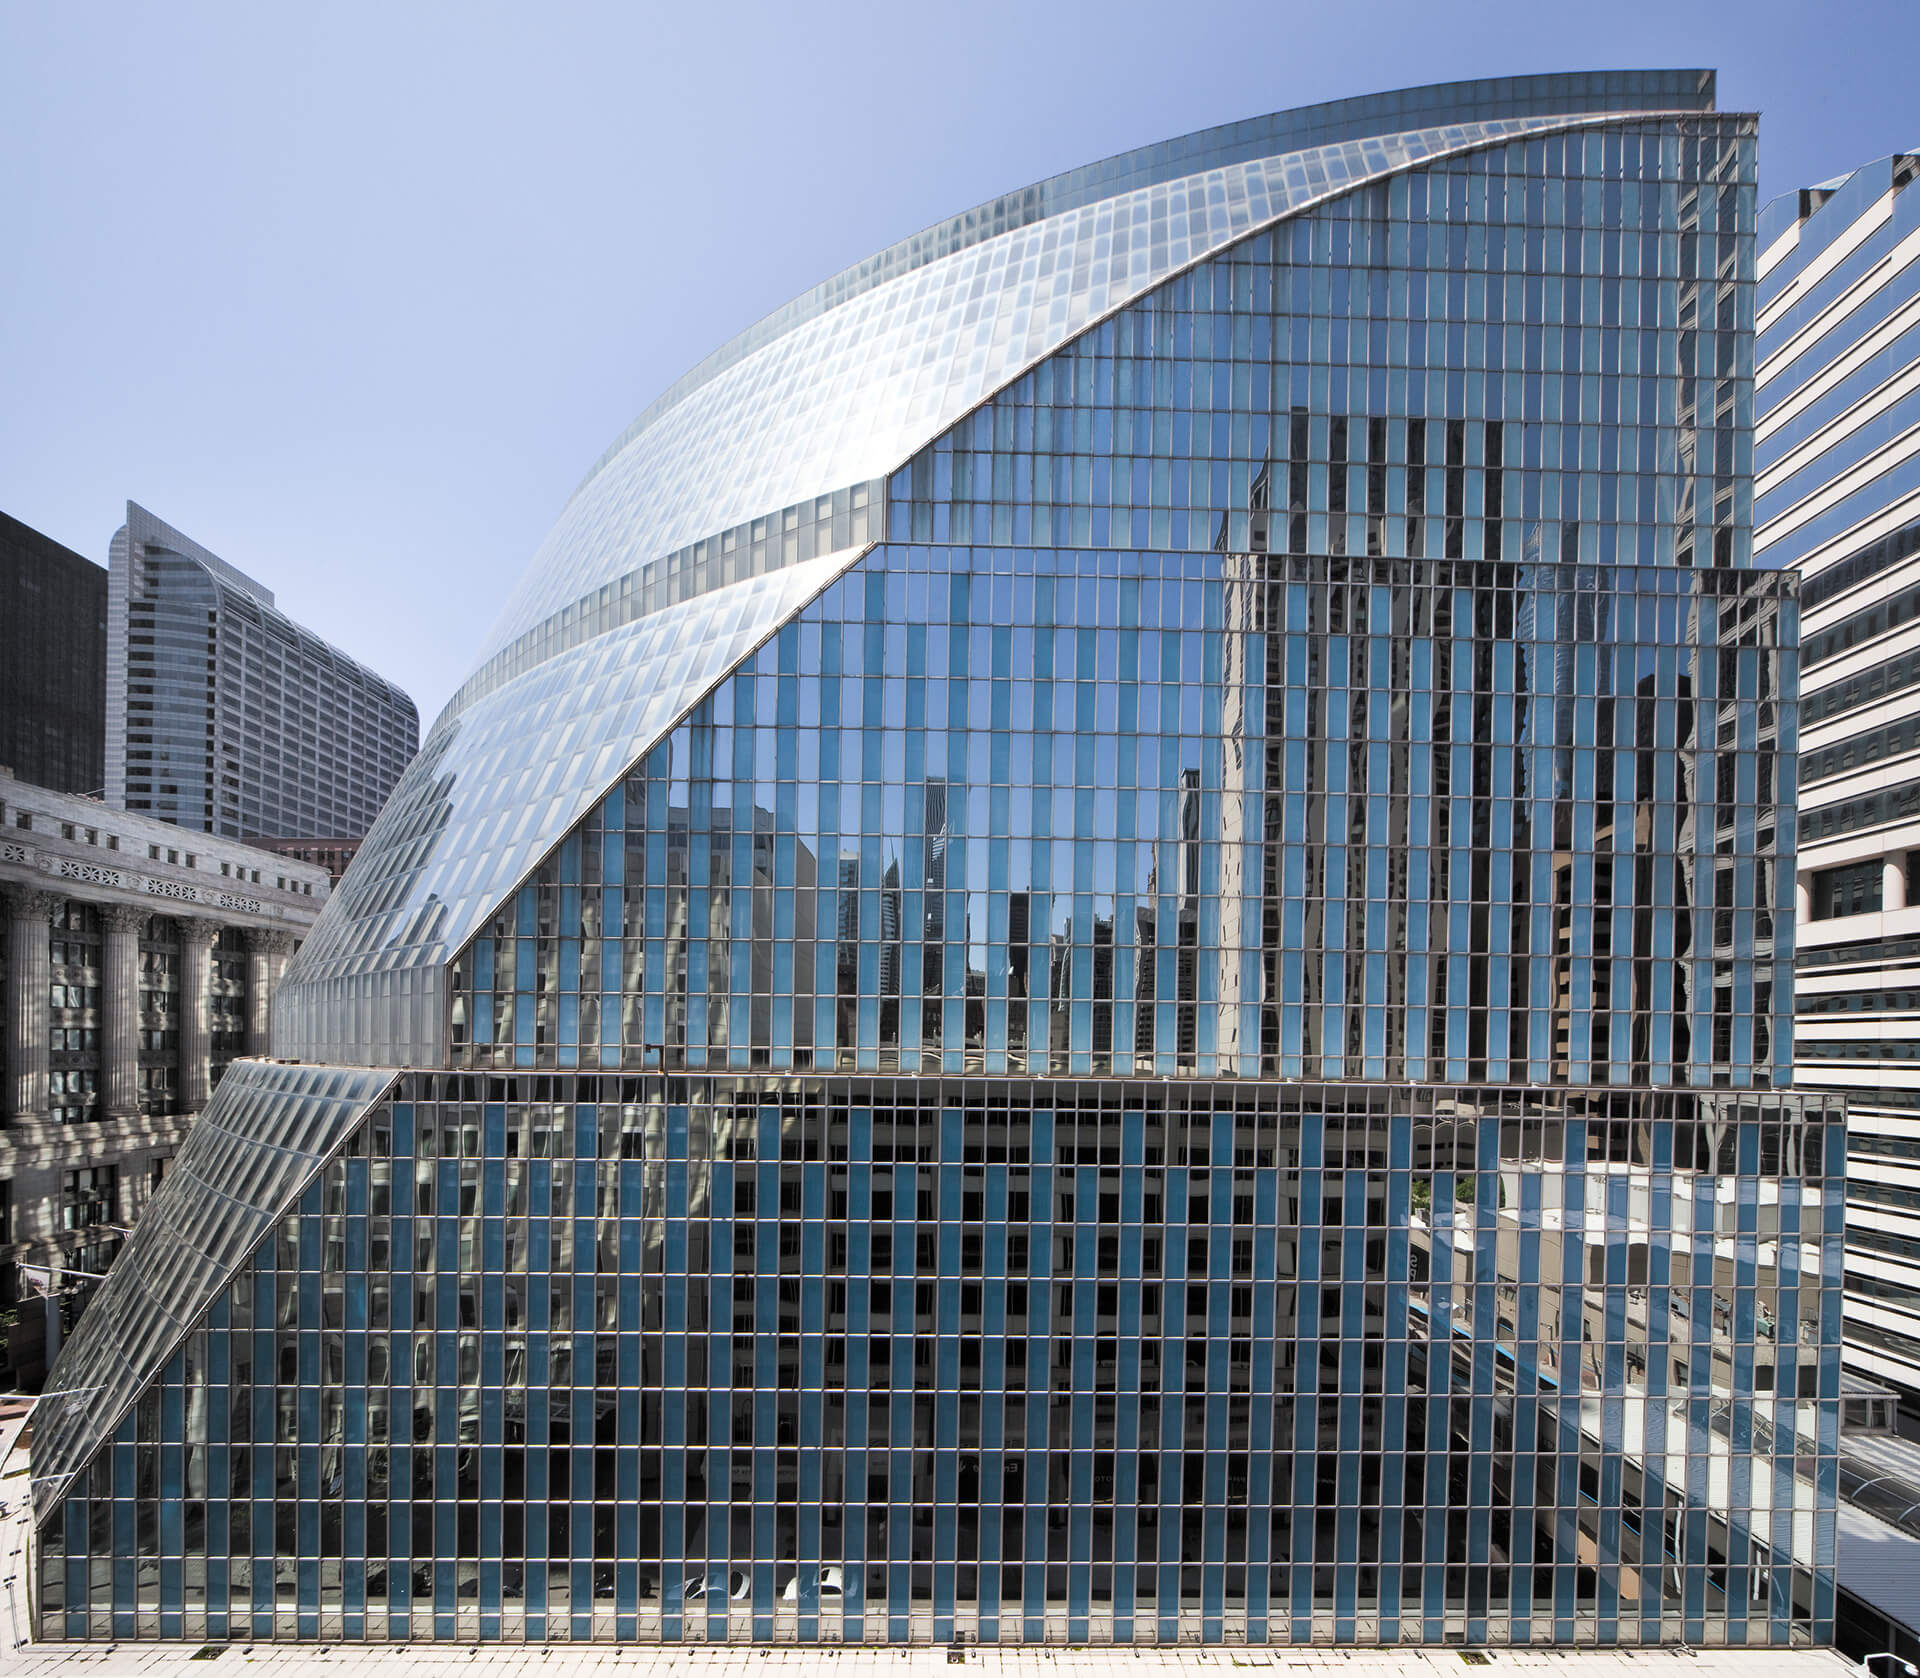 The building is hollowed out to celebrate centrality and transparency of government | James R. Thompson Center by Helmut Jahn | STIRworld